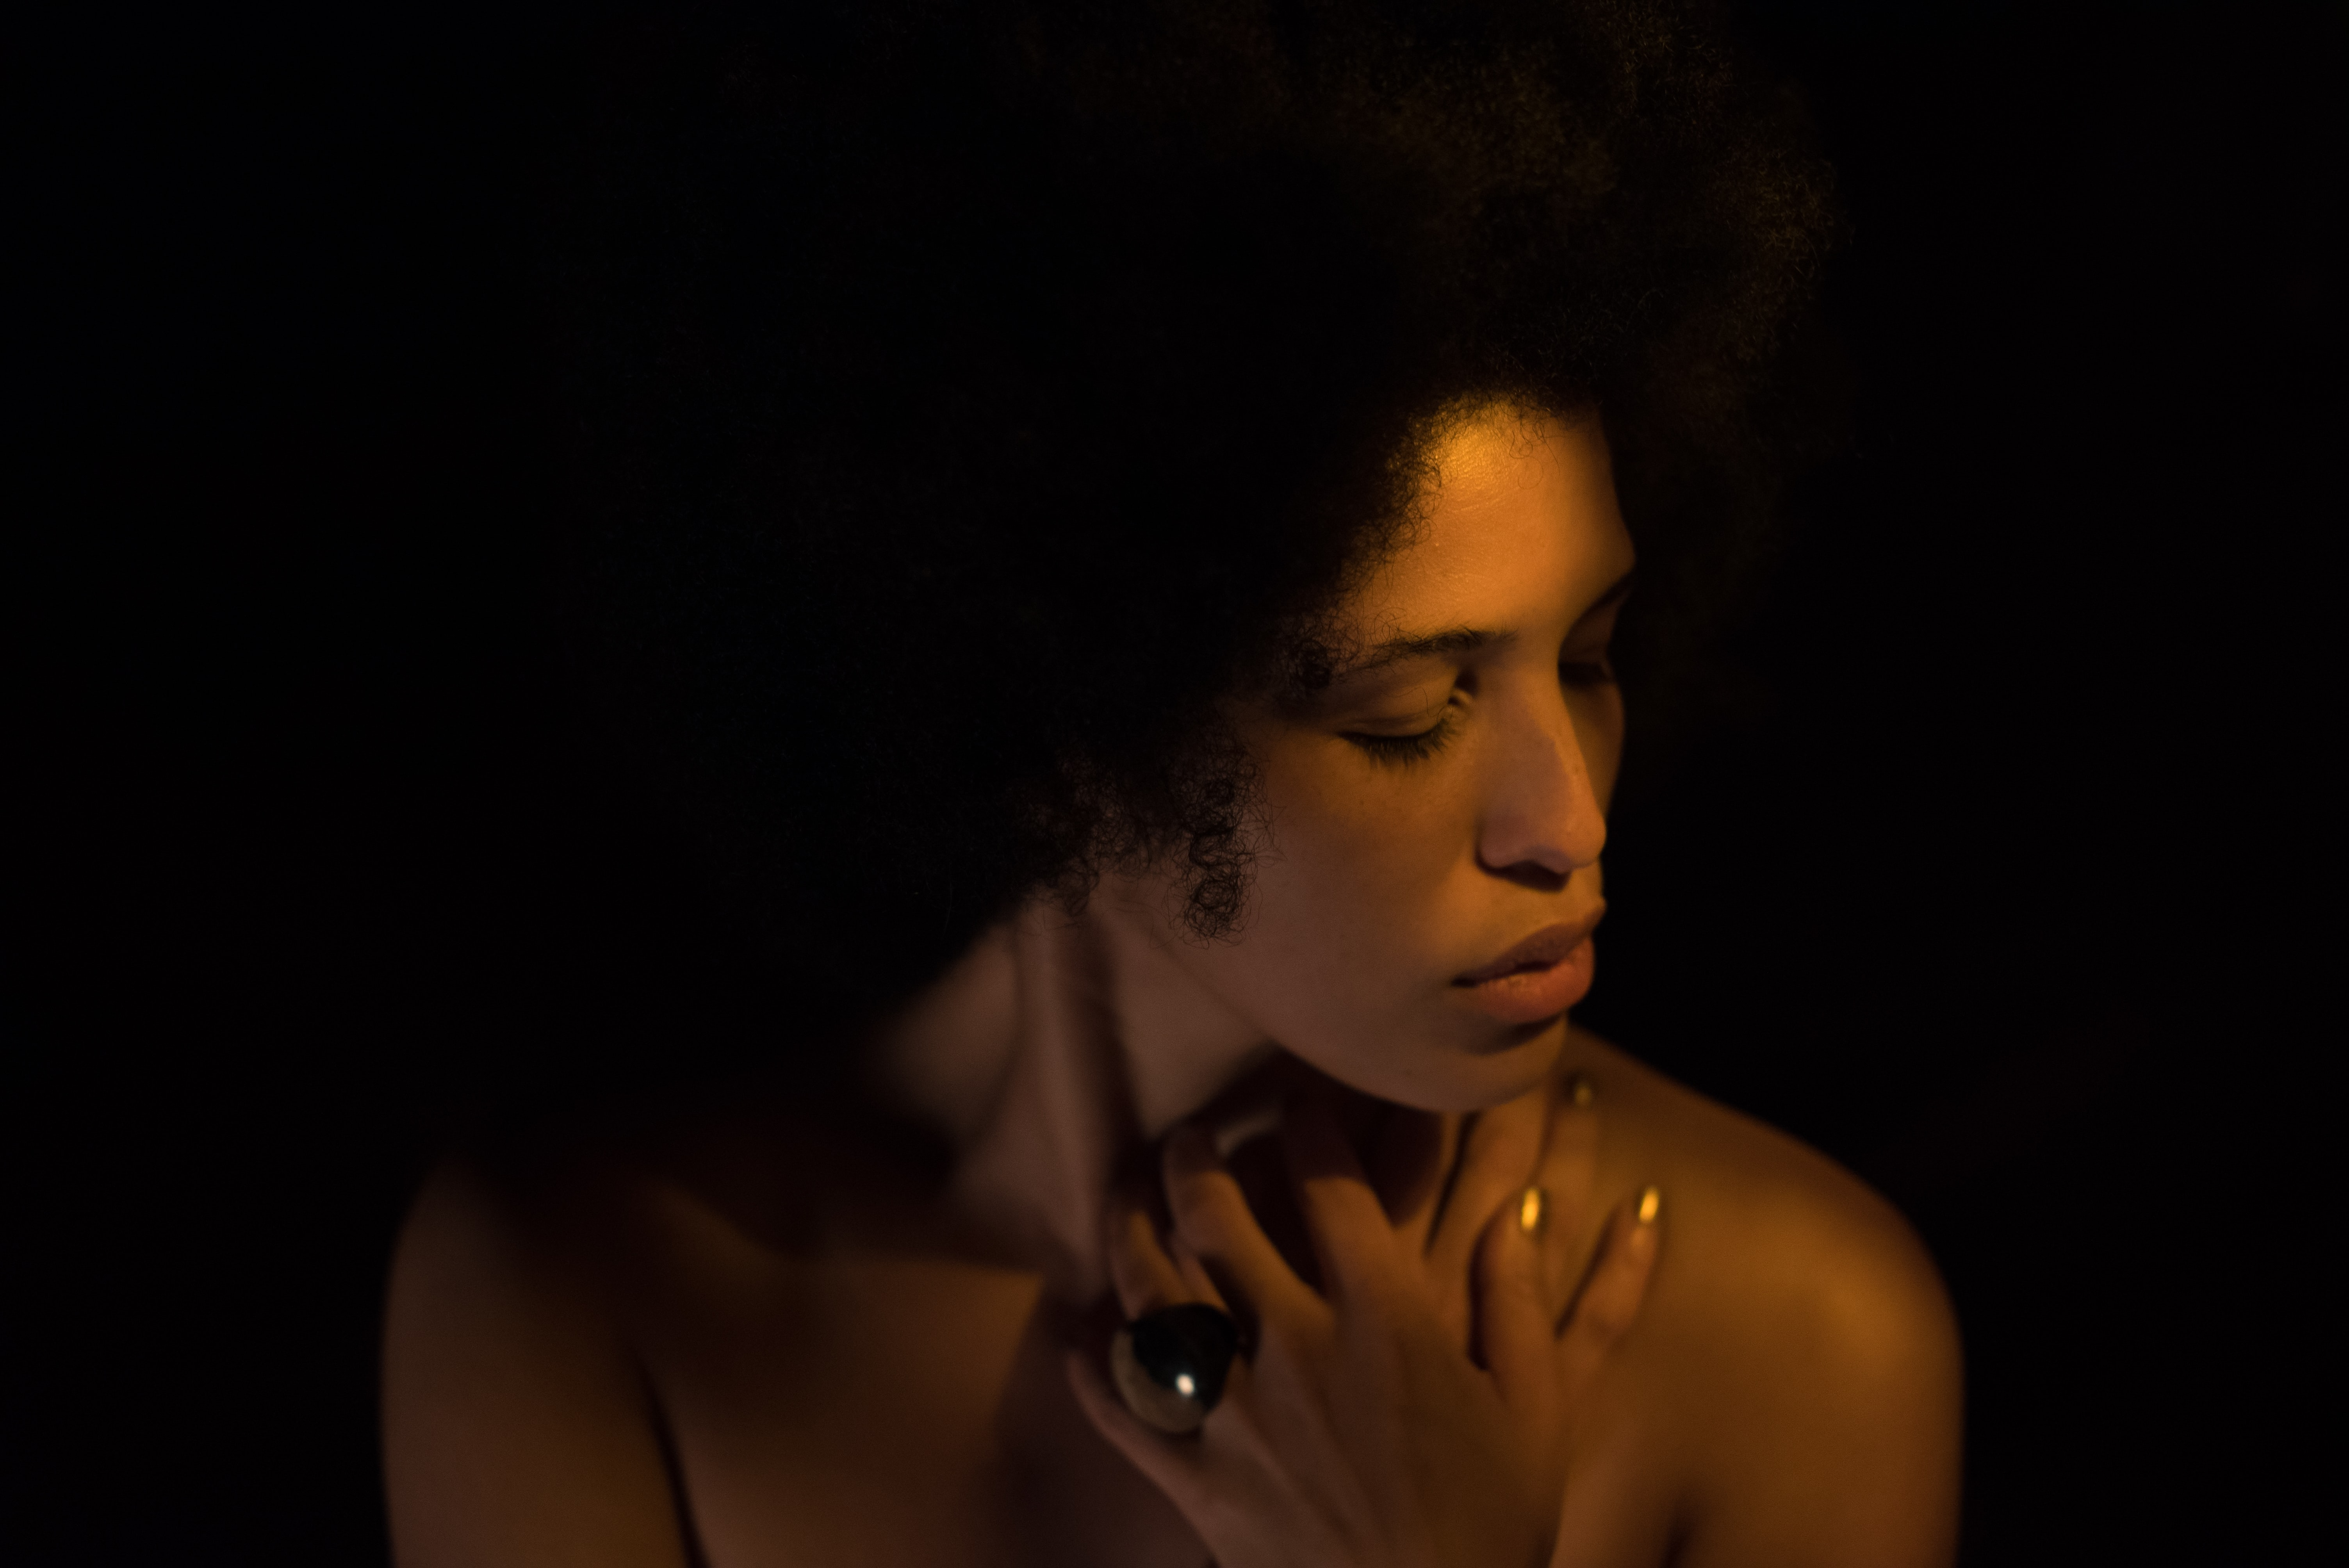 Woman wearing ring with curly hair poses in dark lighting with eyes closed a